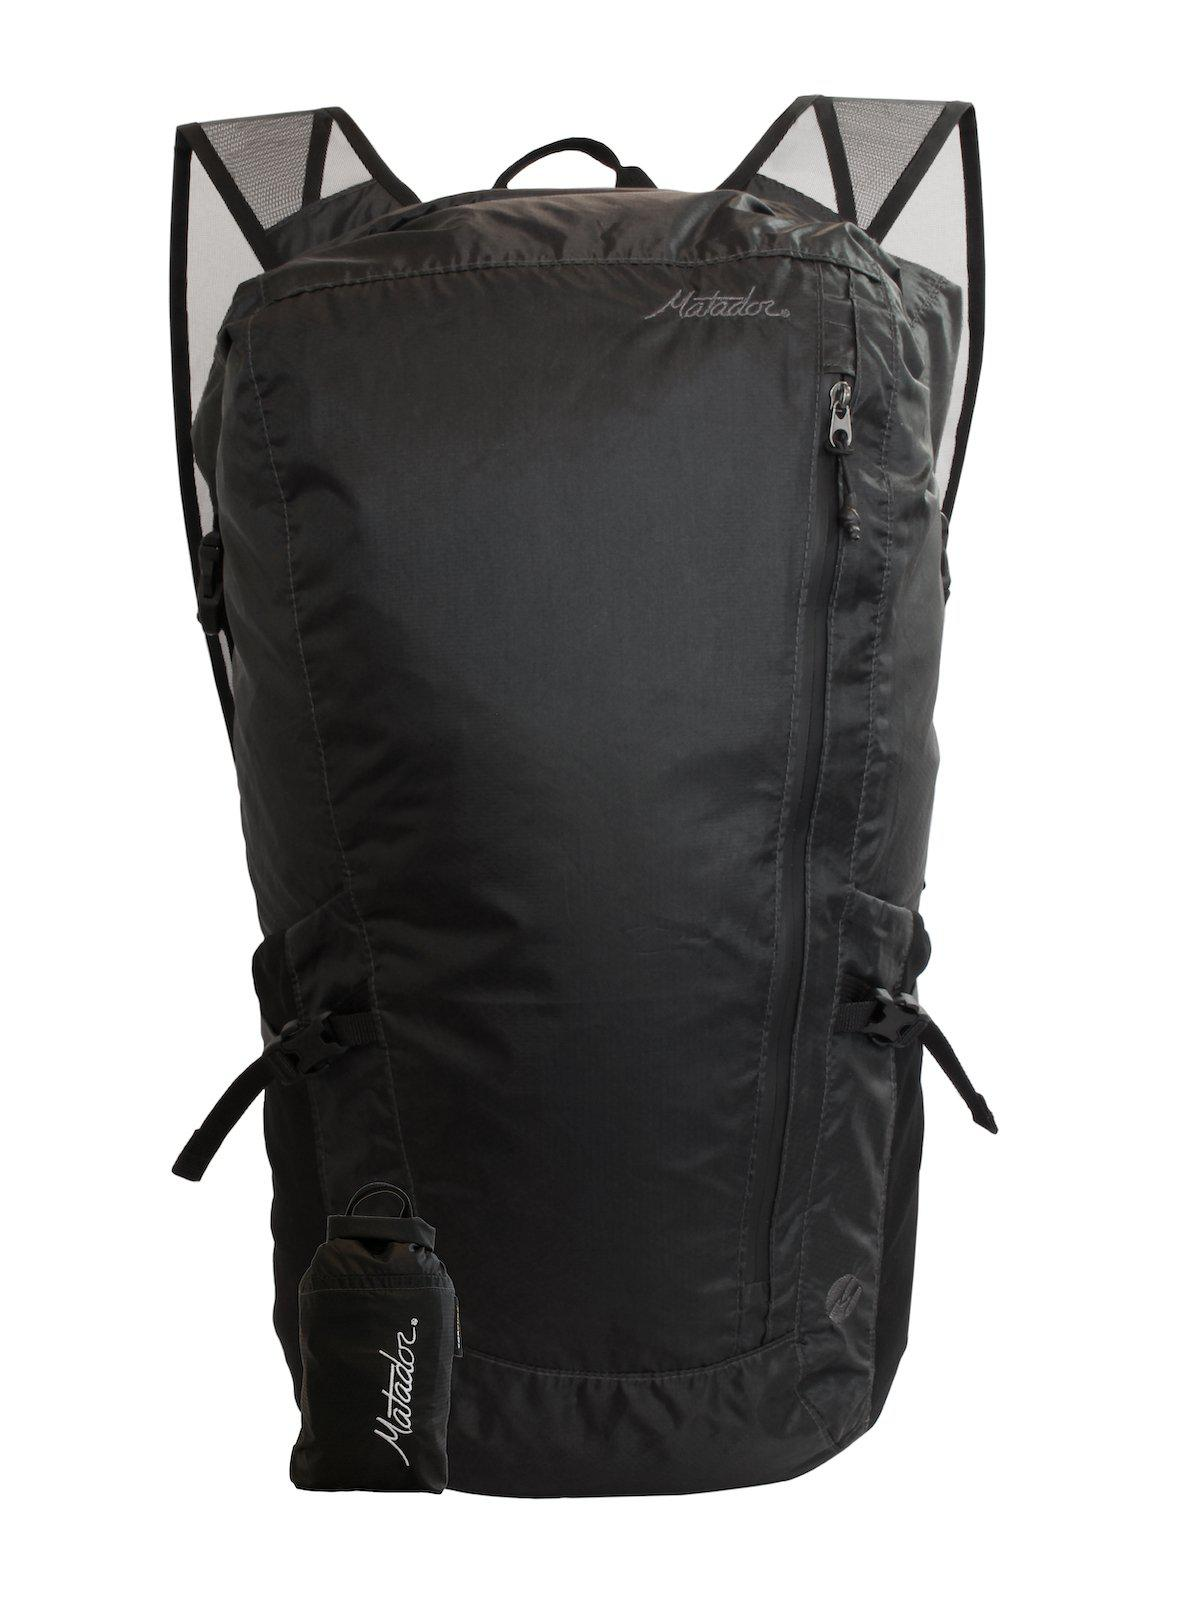 Matador Freerain24 2.0 Packable Backpack Charcoal Grey - MORE by Morello Indonesia